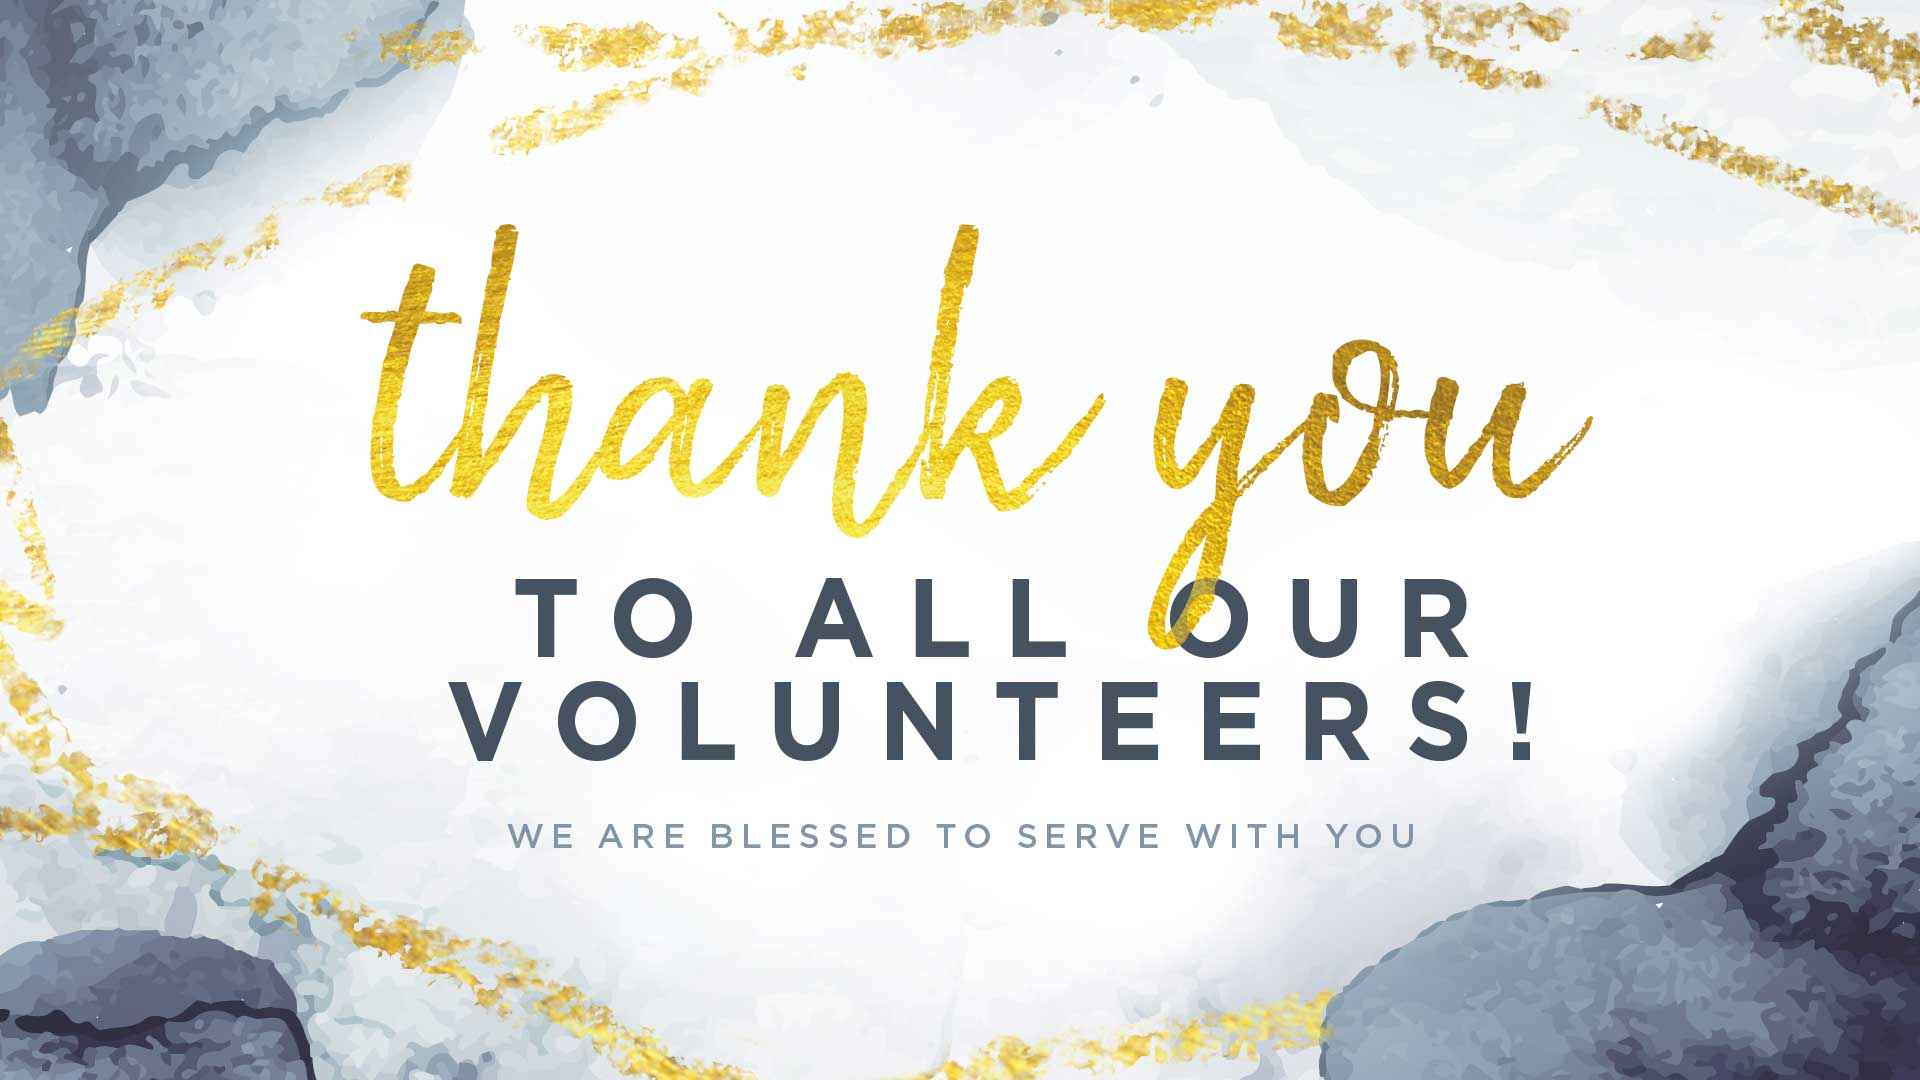 Thank You to All Our Volunteers! - Stonebriar Community Church